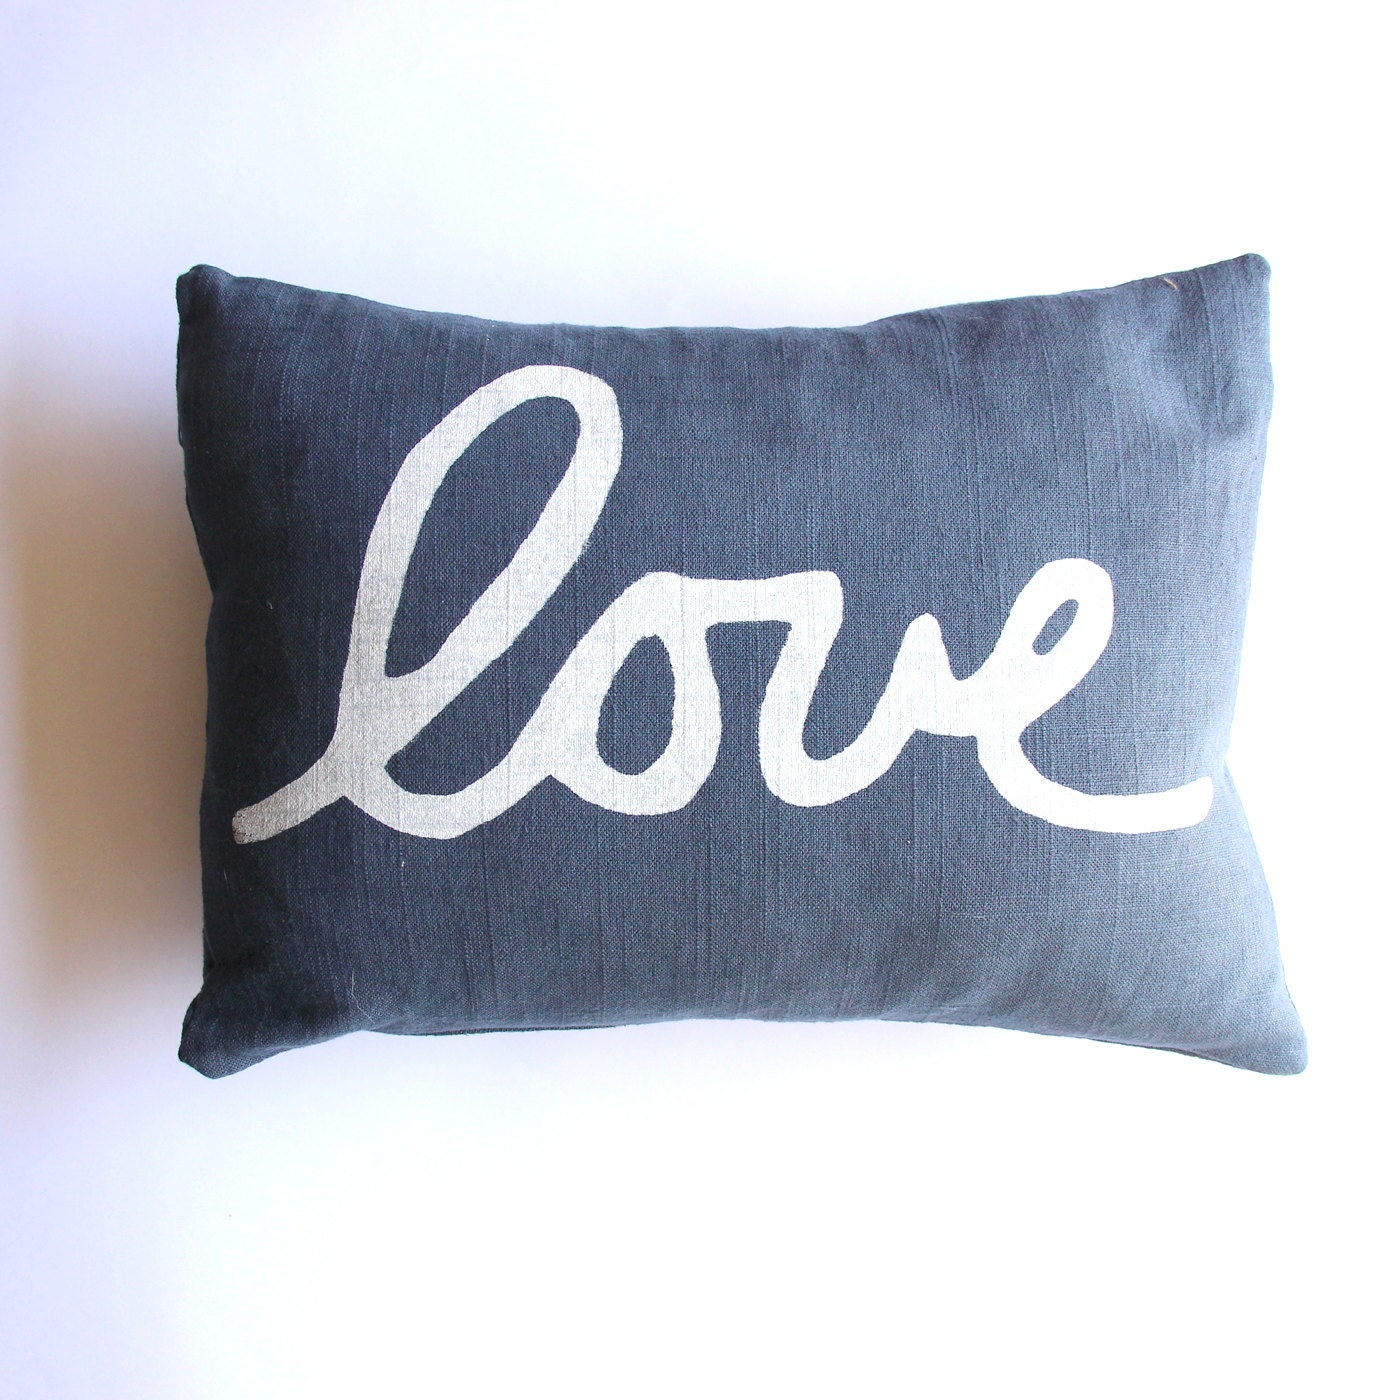 Throw Pillow Love : Navy Blue Love Pillow Square Love Throw Pillow Blue and